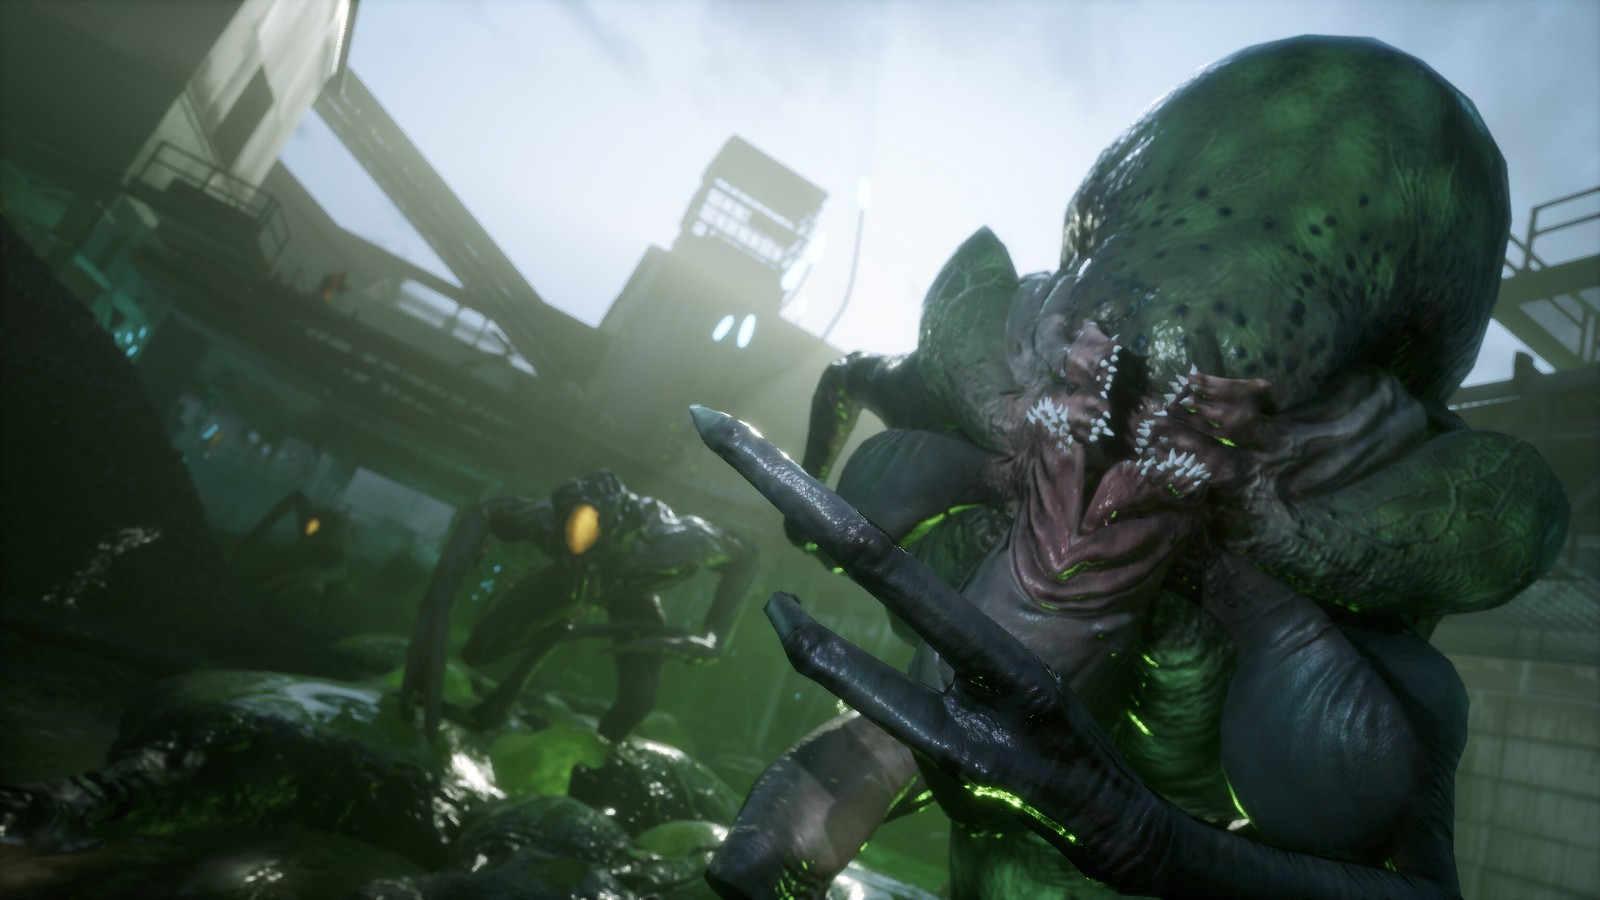 Co-op Shooter Earthfall Out on PS4 Tomorrow – PlayStation Blog